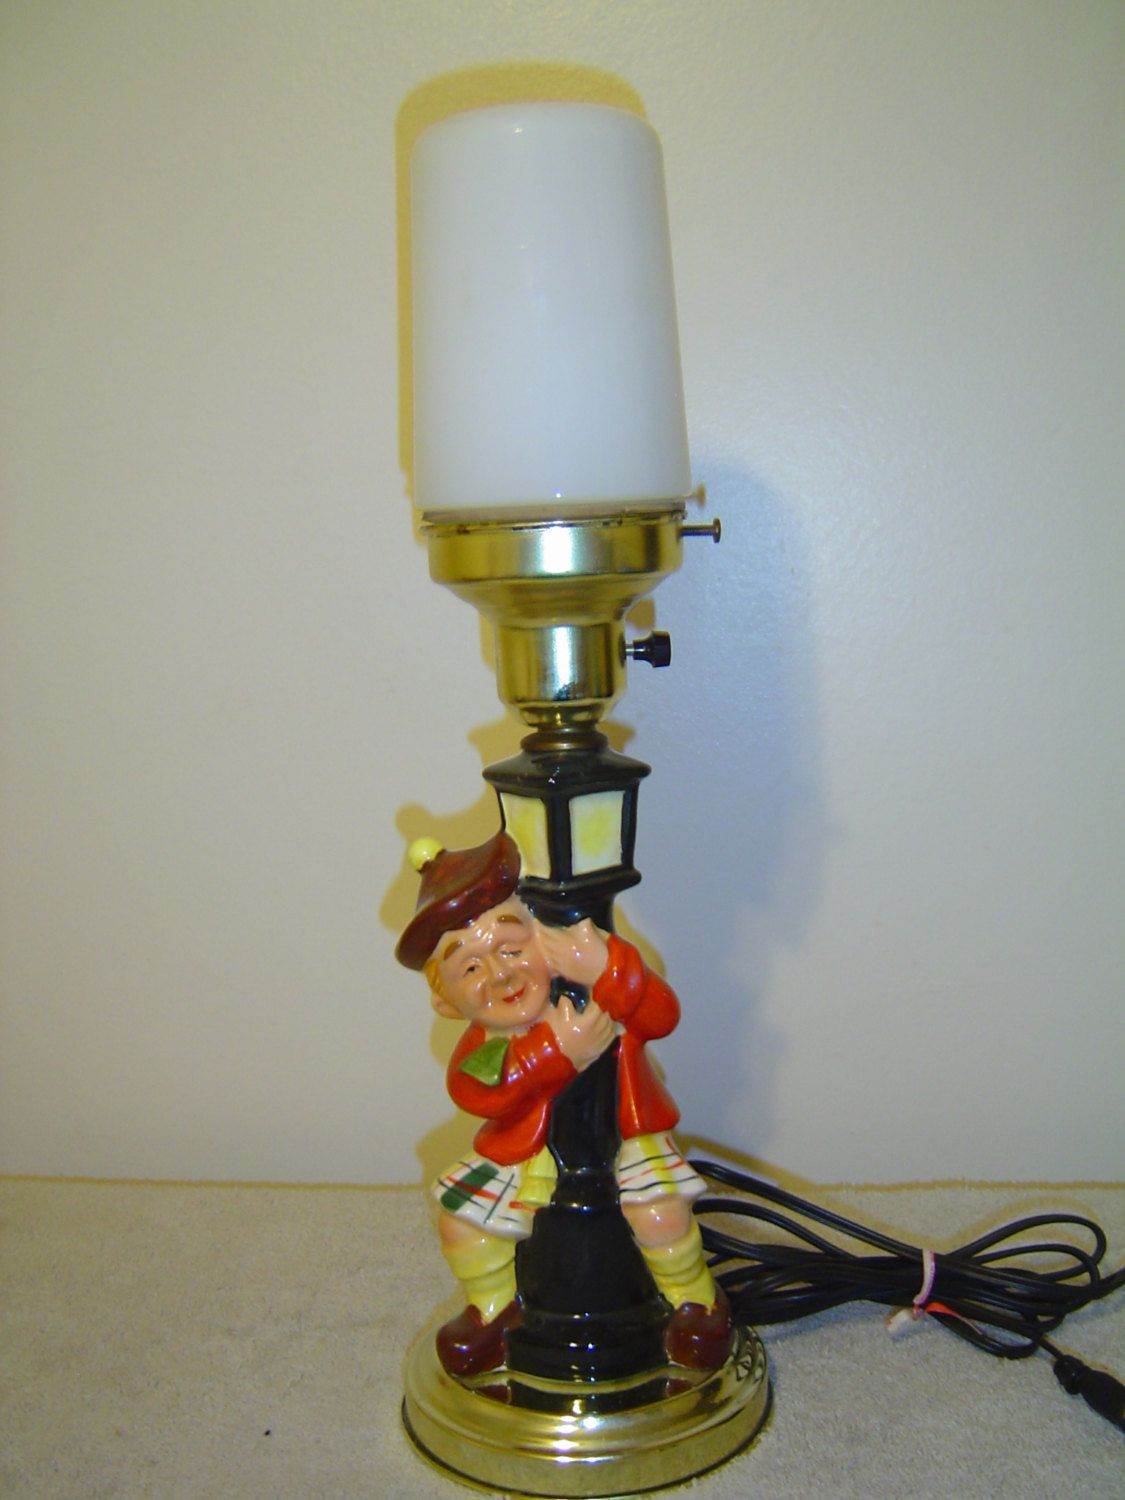 Bar Lamp With Scottish Man Vintage Drunk Hobo Clings To Light Post Gl Globe